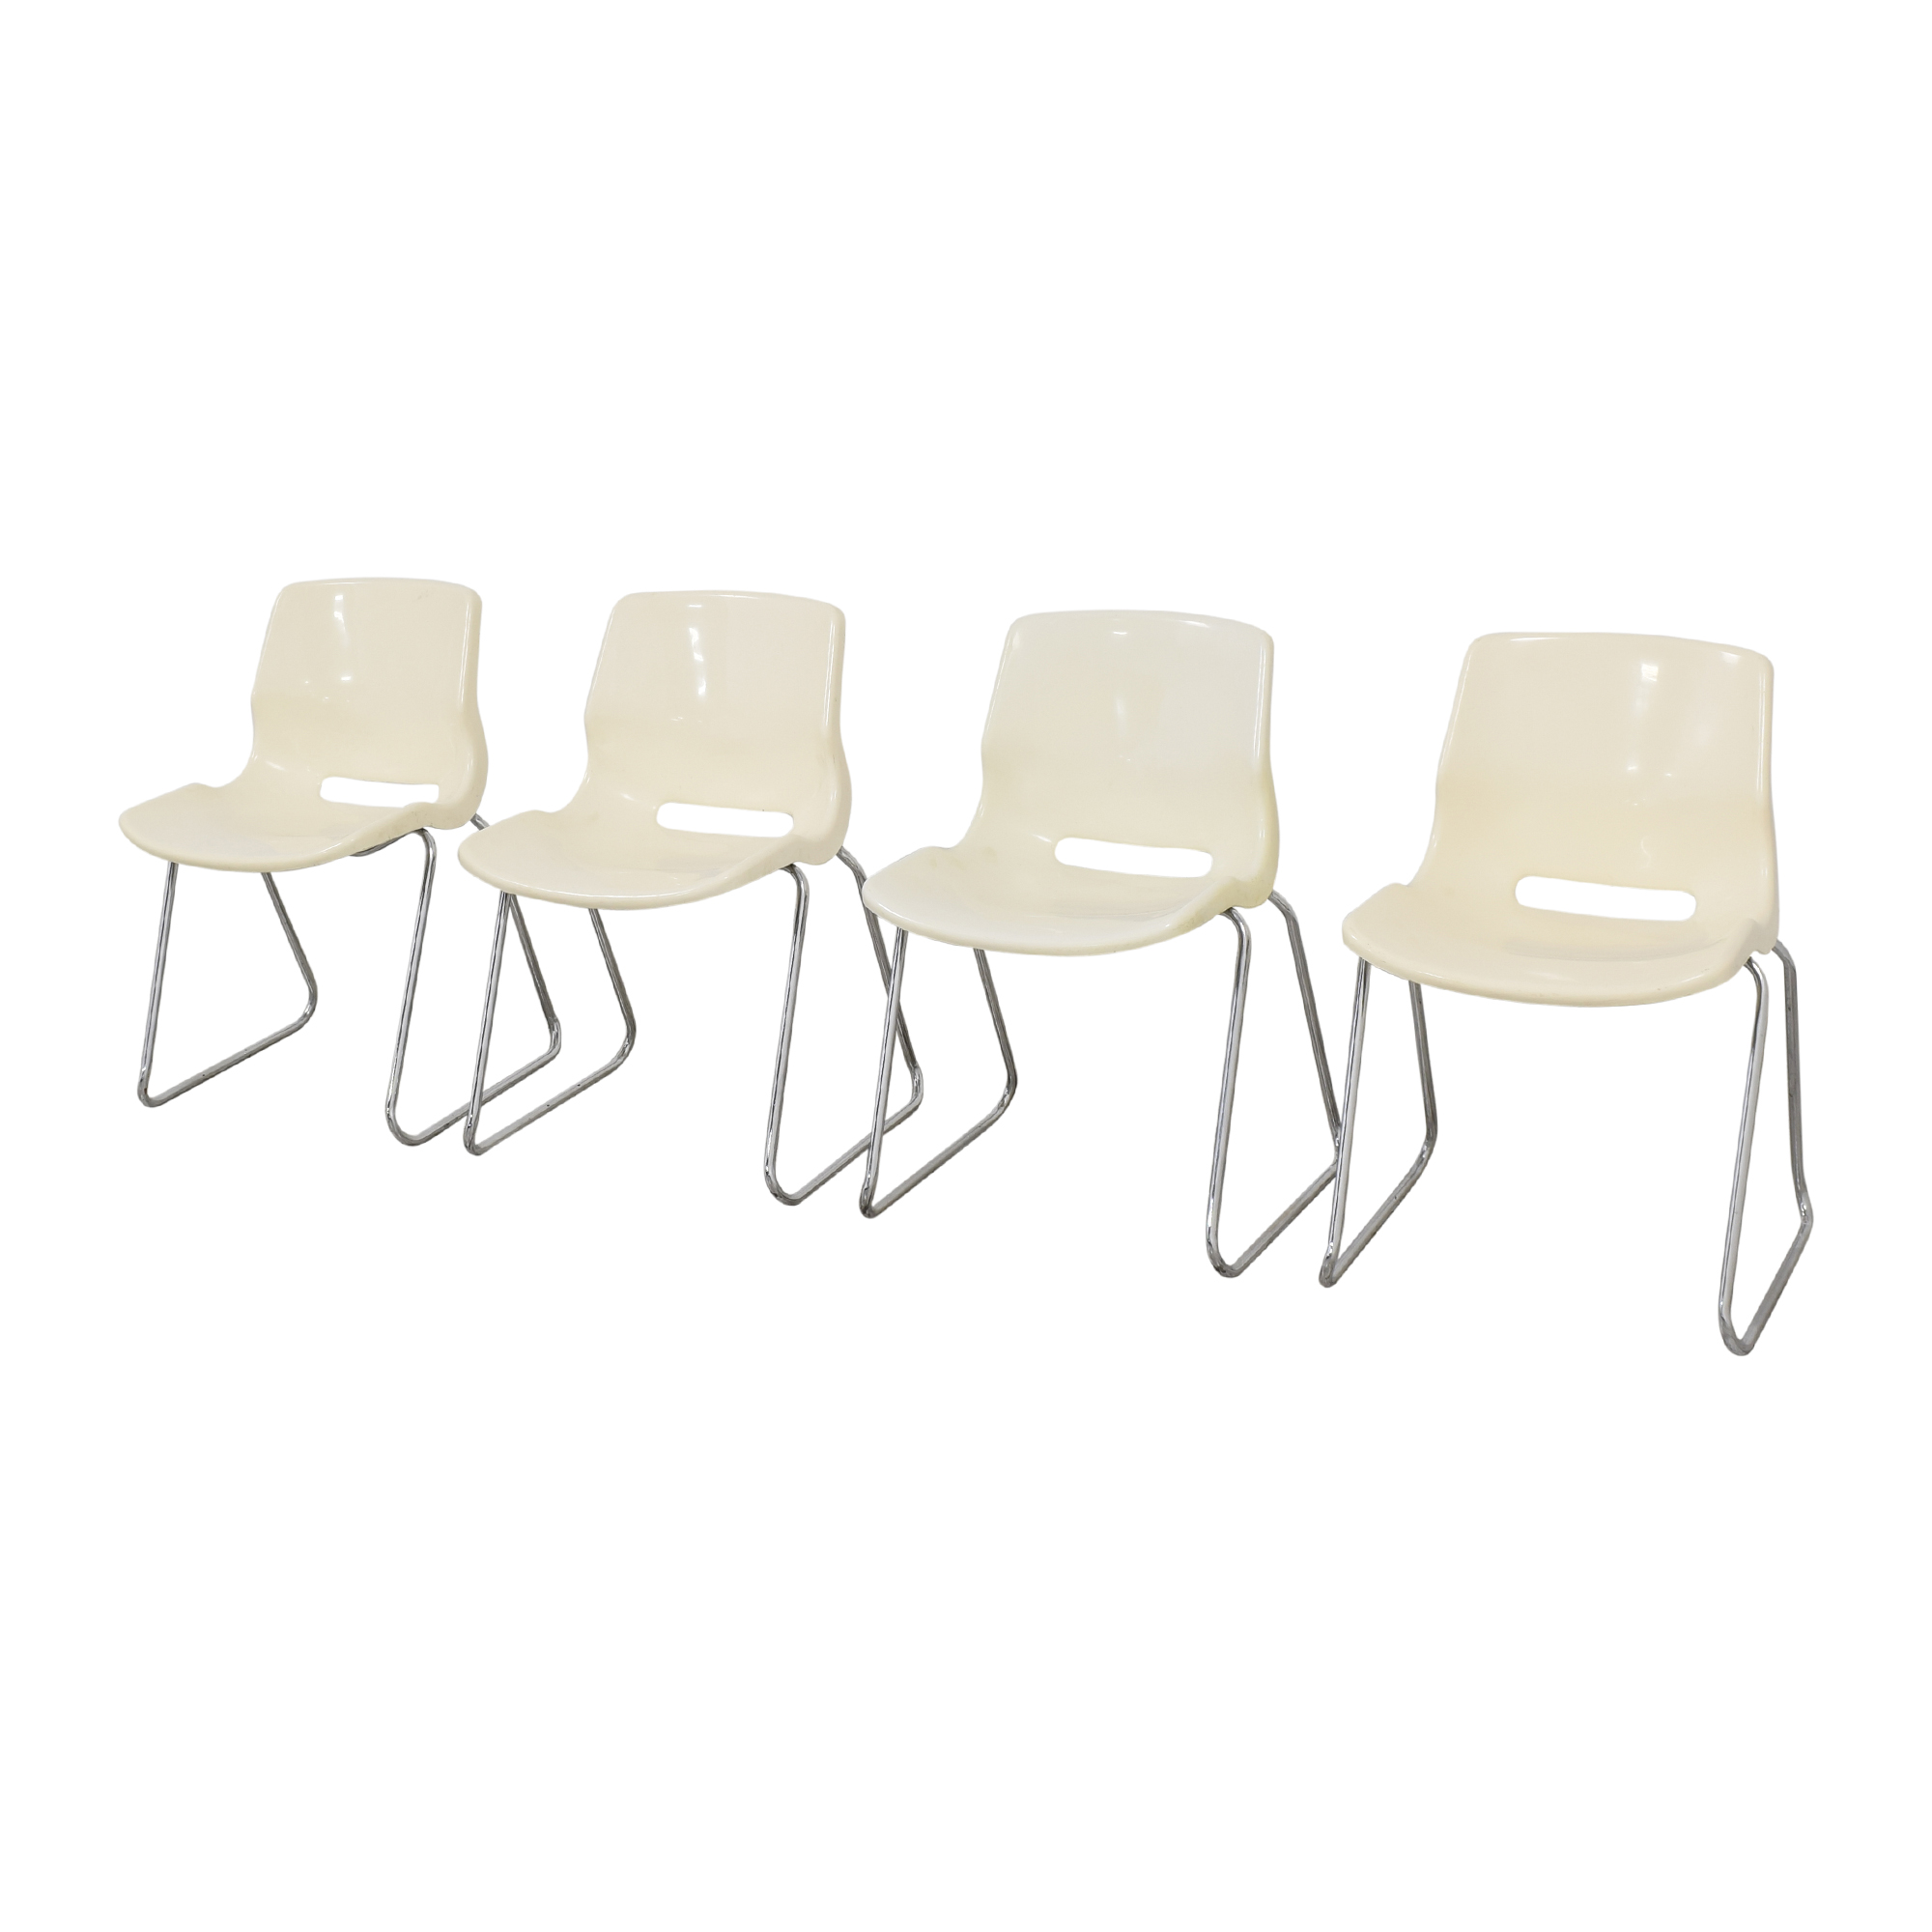 Overman Overman by Svante Schoblom Swedish Stacking Dining Chairs off white & silver